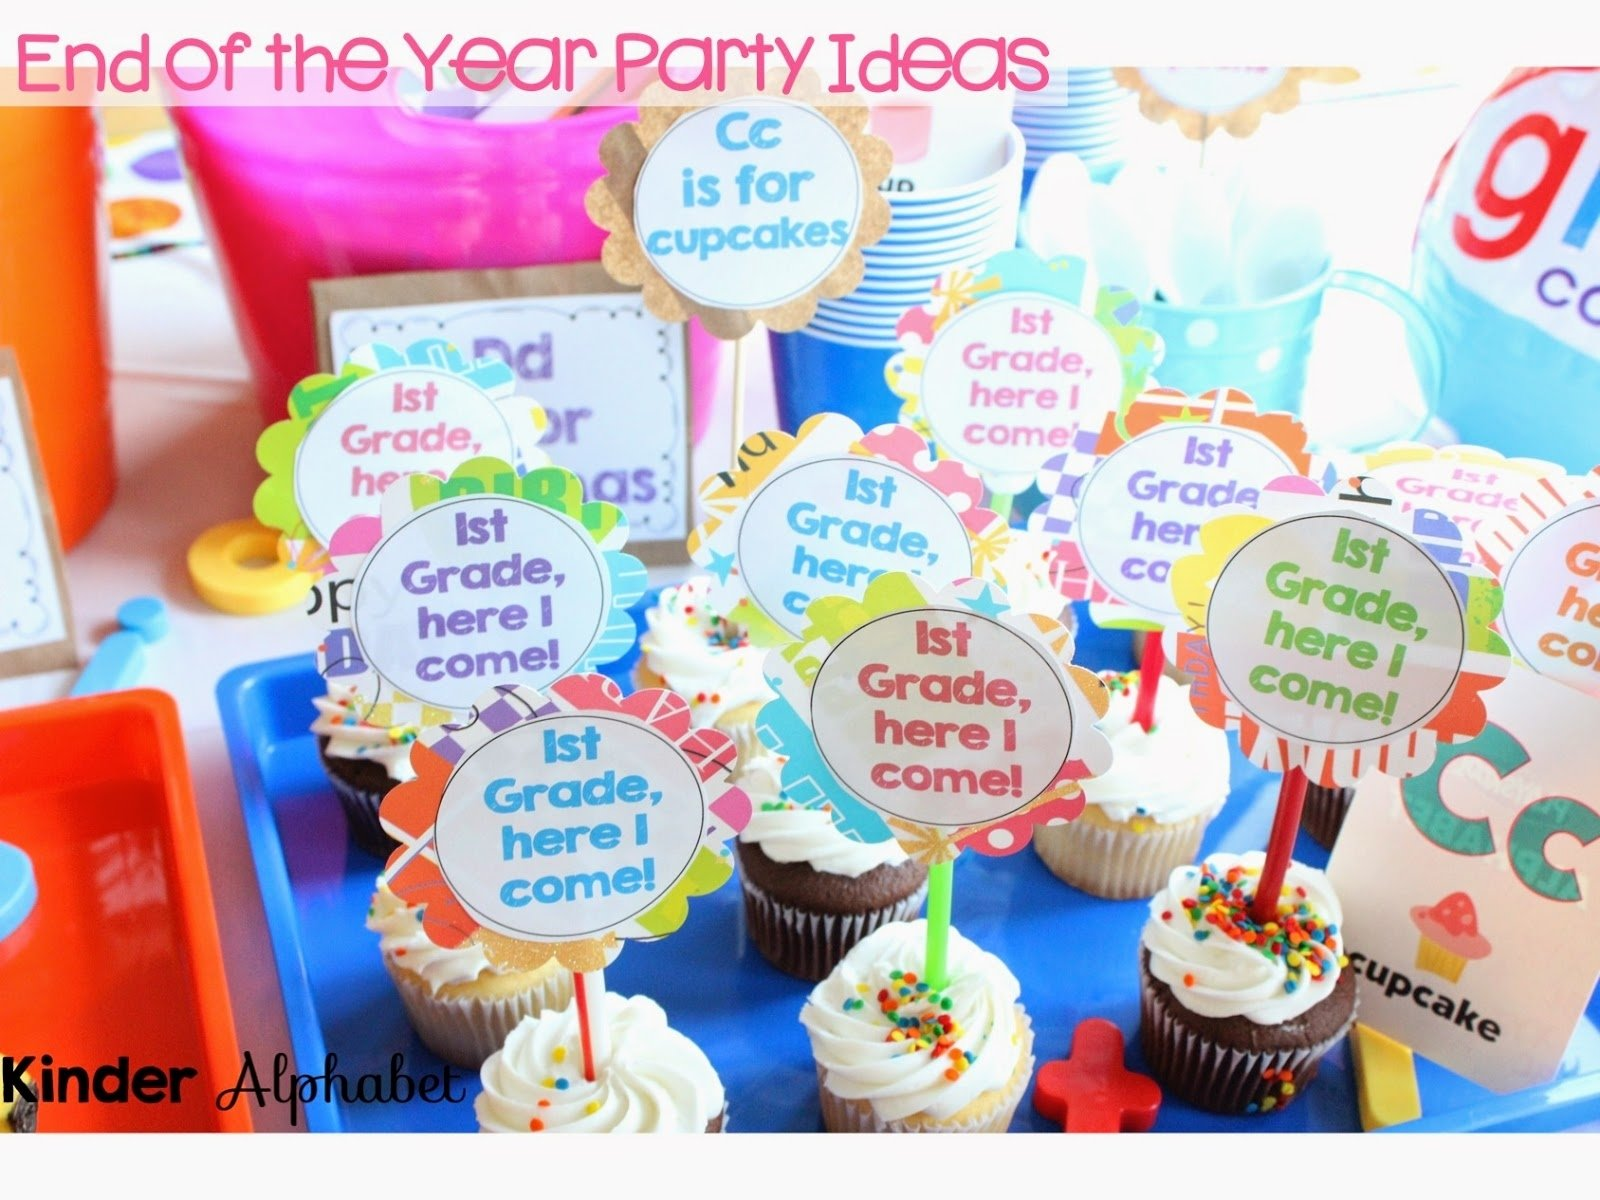 the ultimate roundup of end of the year party ideas | occasionally